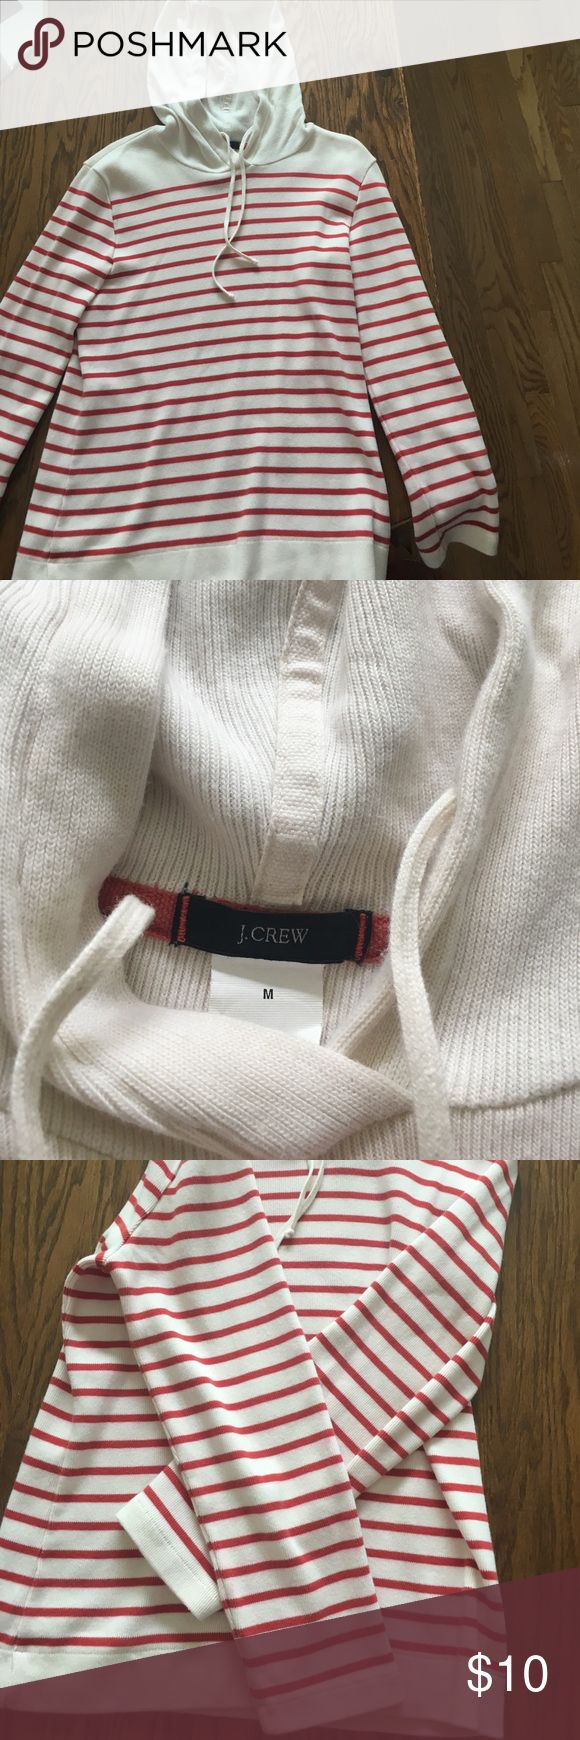 J.Crew red & cream striped hooded sweatshirt J.crew size medium red and cream hooded sweatshirt. Gently used but in very good condition. Size medium. No holes stains etc. The sleeves measure approximately 21 inches and the length from shoulder runs to bottom approximately 22 inches. Thank you for taking a look. J. Crew Tops Sweatshirts & Hoodies